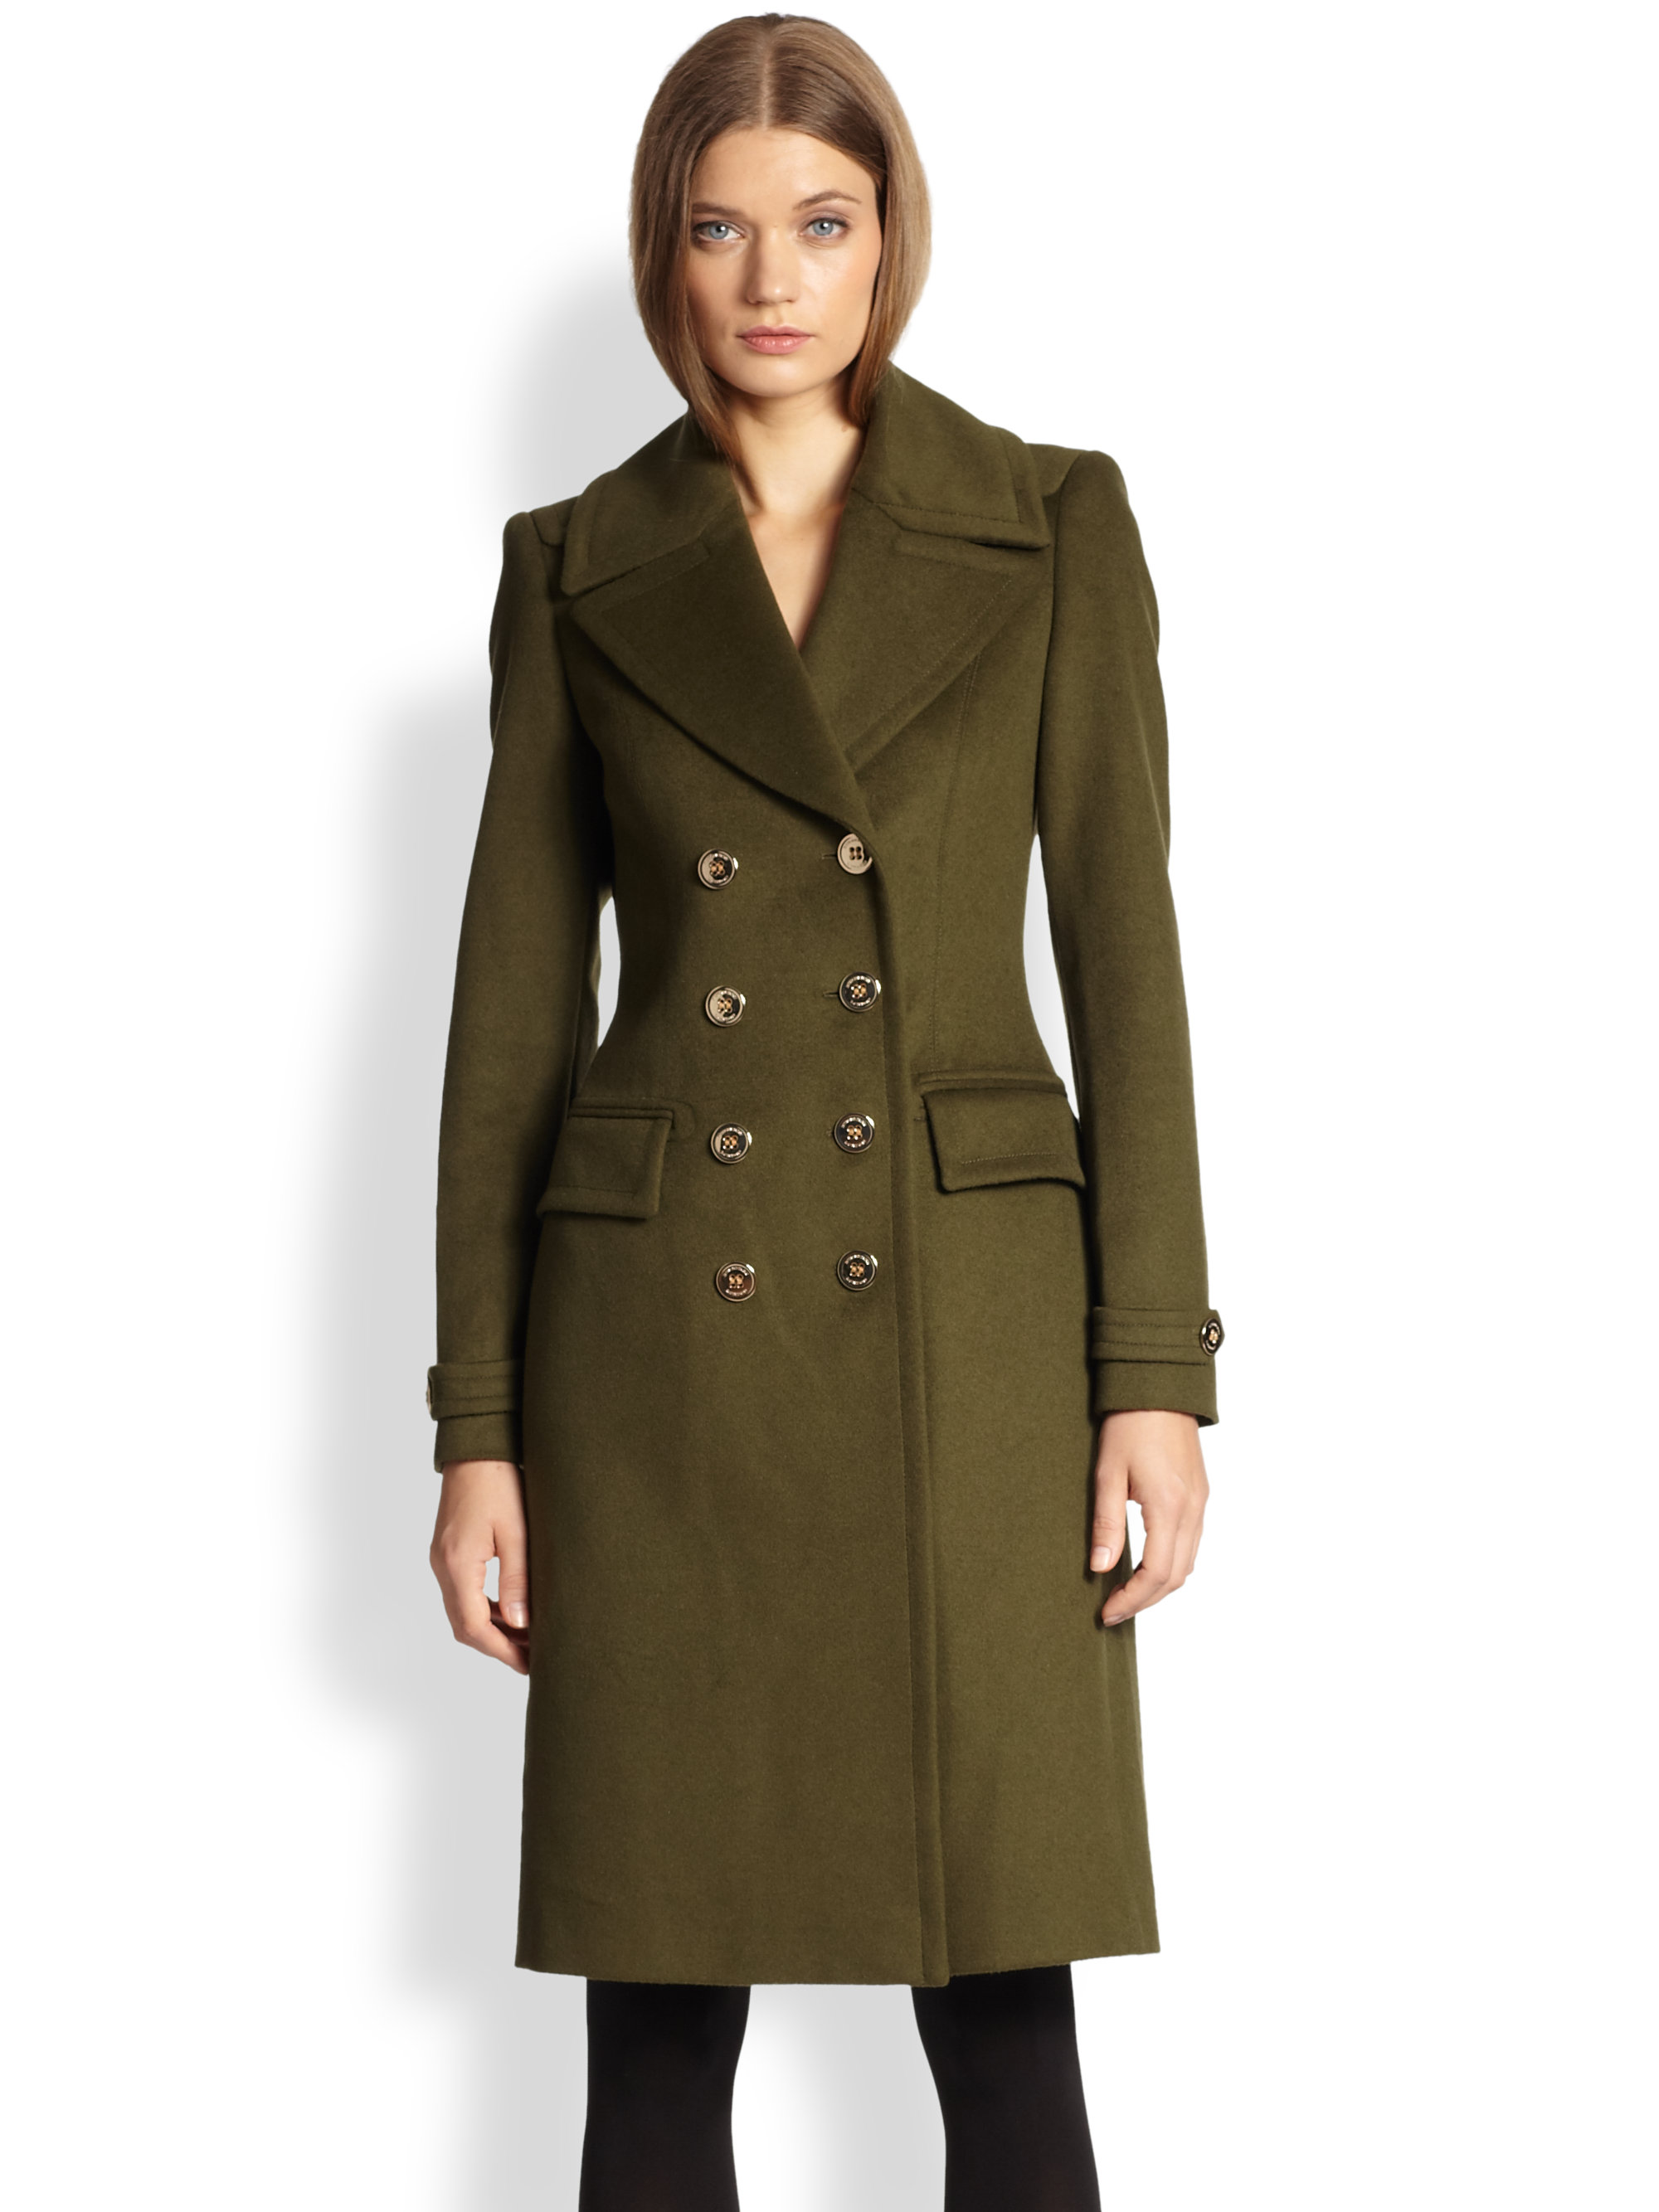 Burberry Doublebreasted Wool Cashmere Military Coat in Green | Lyst